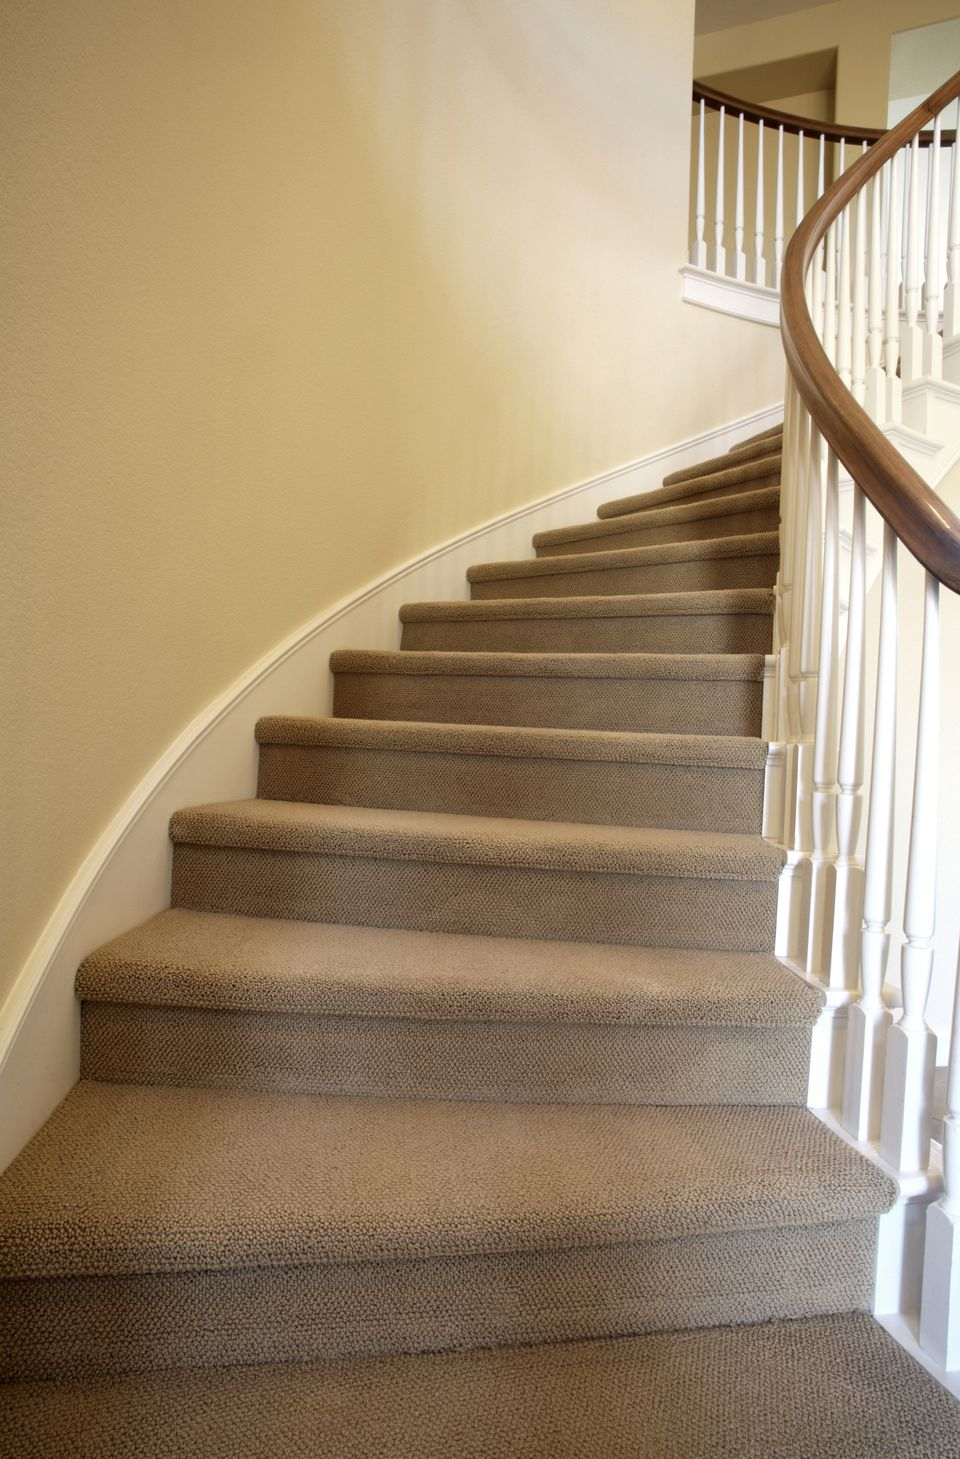 Merveilleux How To Carpet Stairs